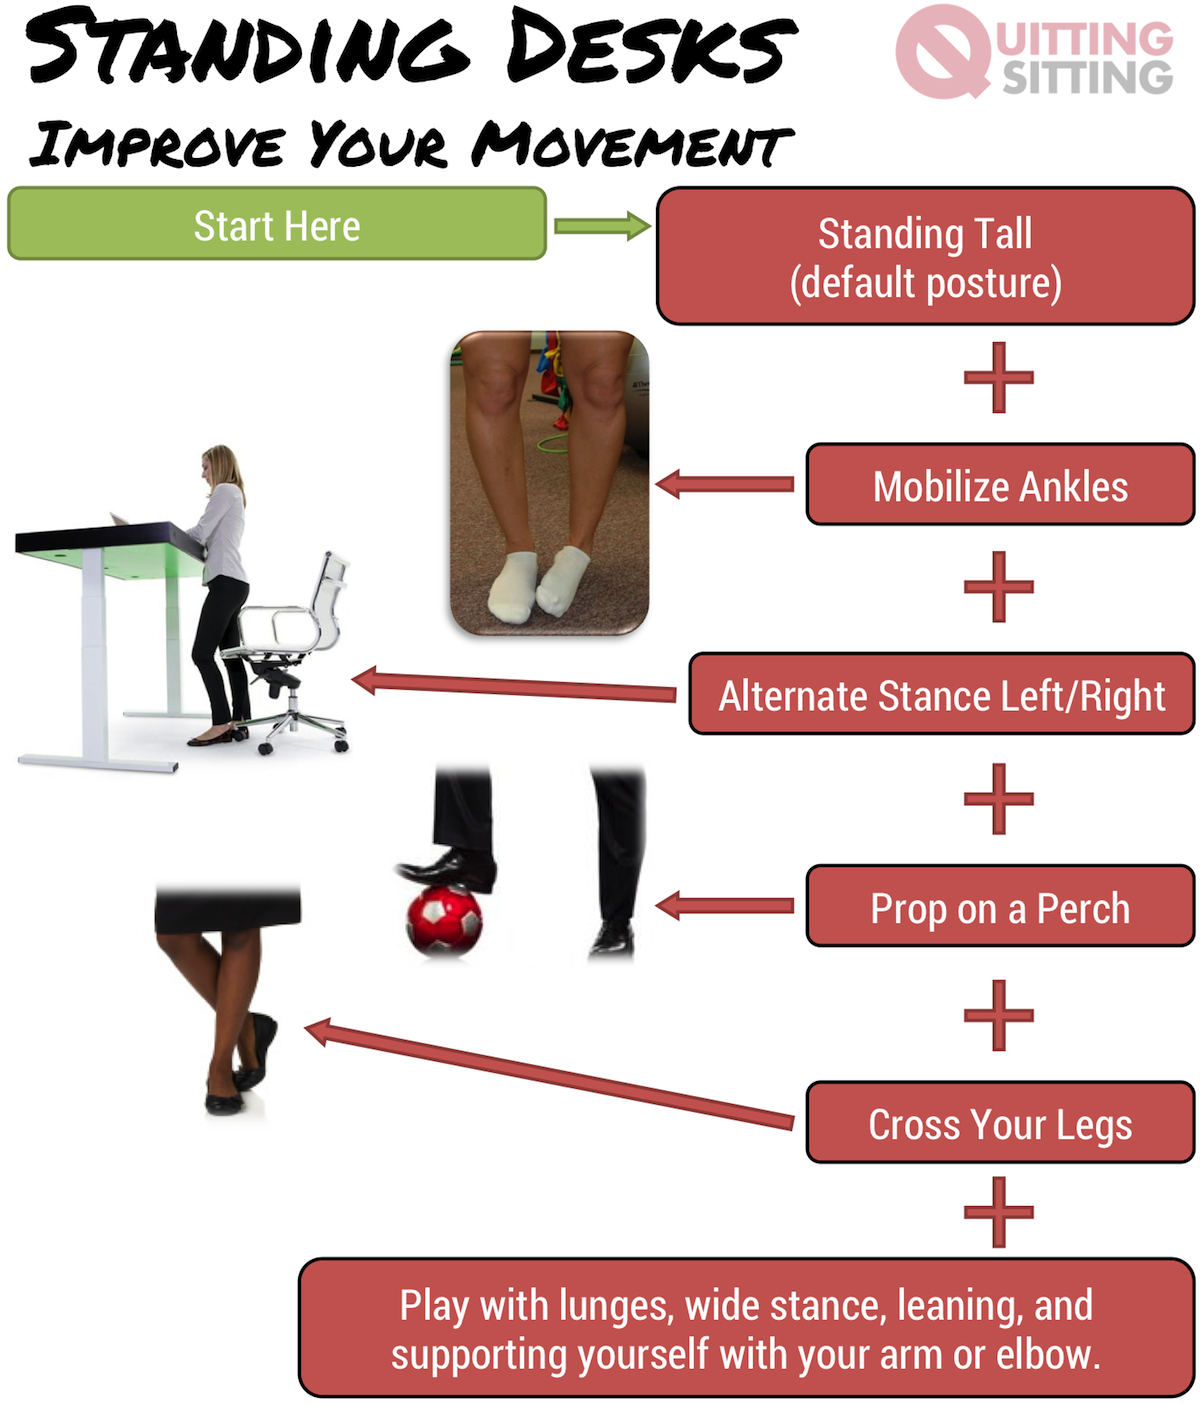 Quitting Sitting Transition Plan Improve Your Movement Accessory Postures